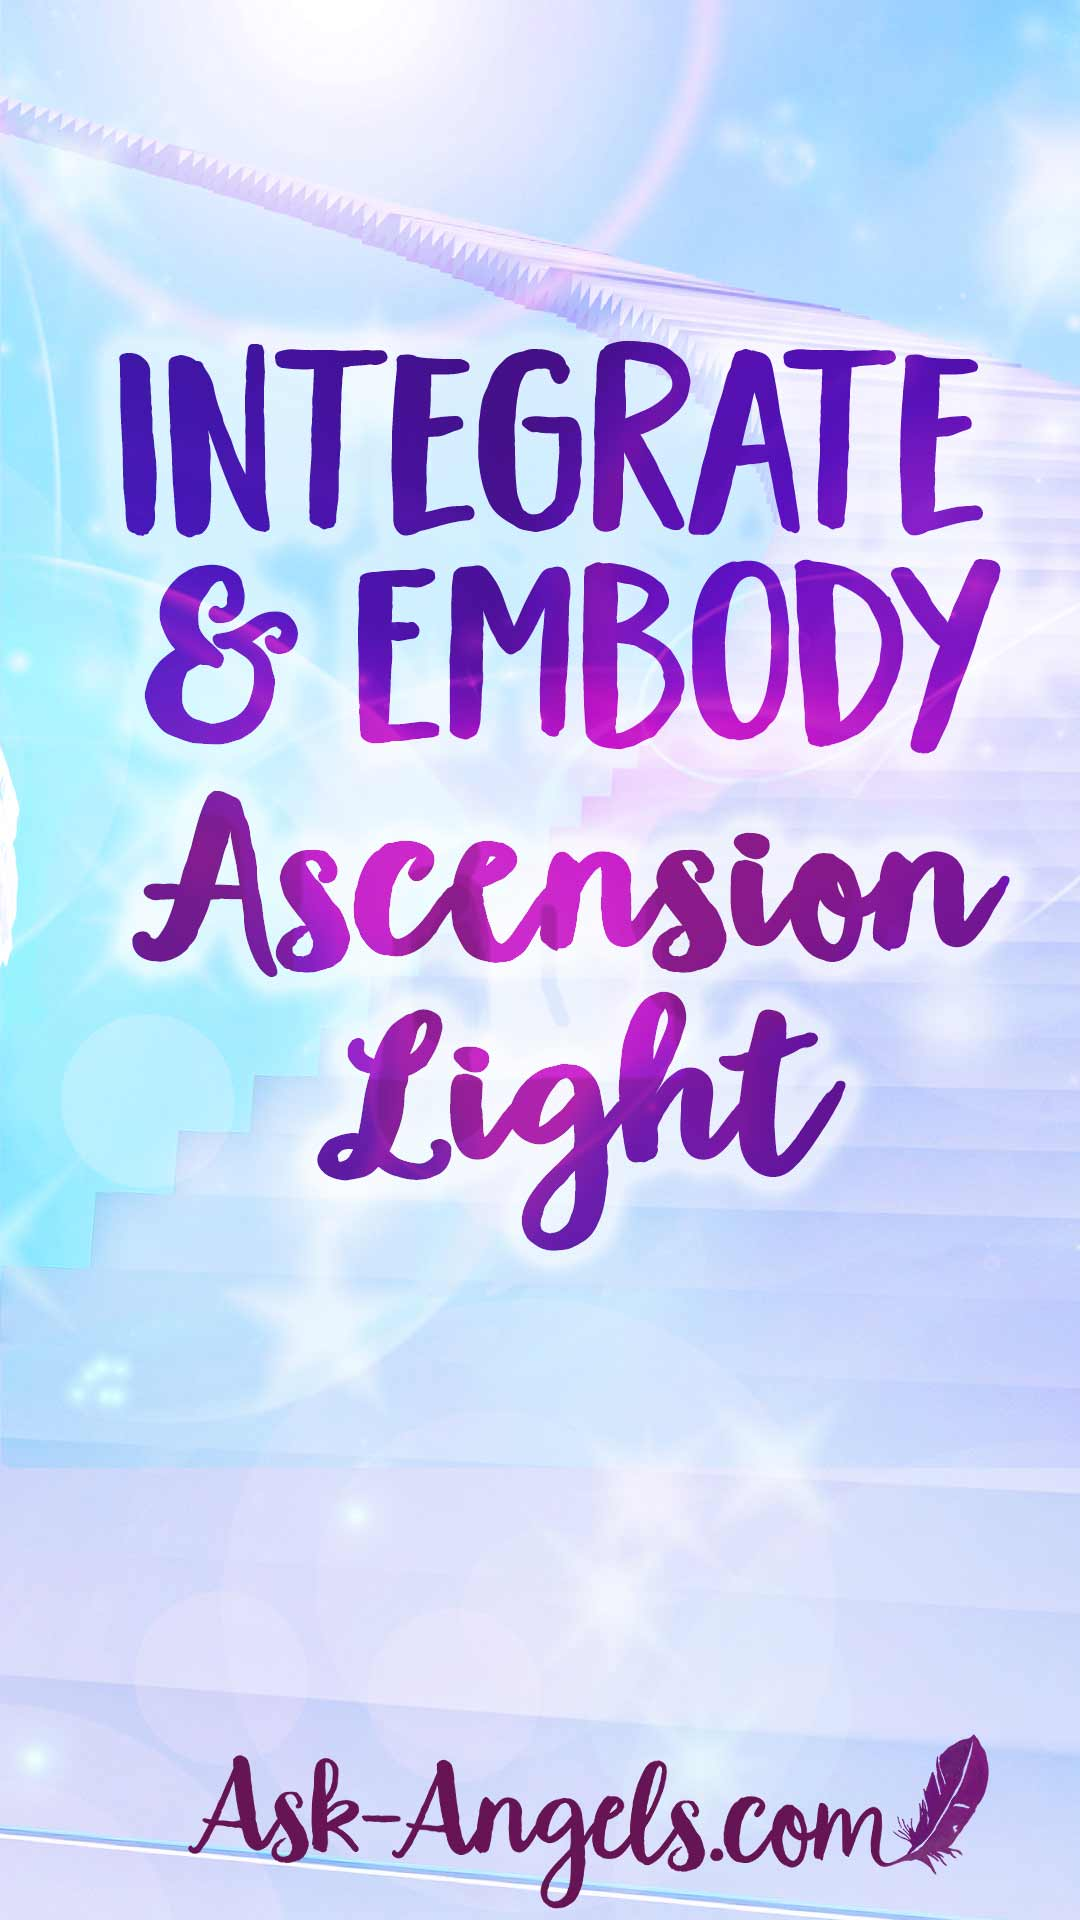 Integrate and embody ascension light... Click to learn a simple process for receiving and integrating higher levels of light and ascension energy now.